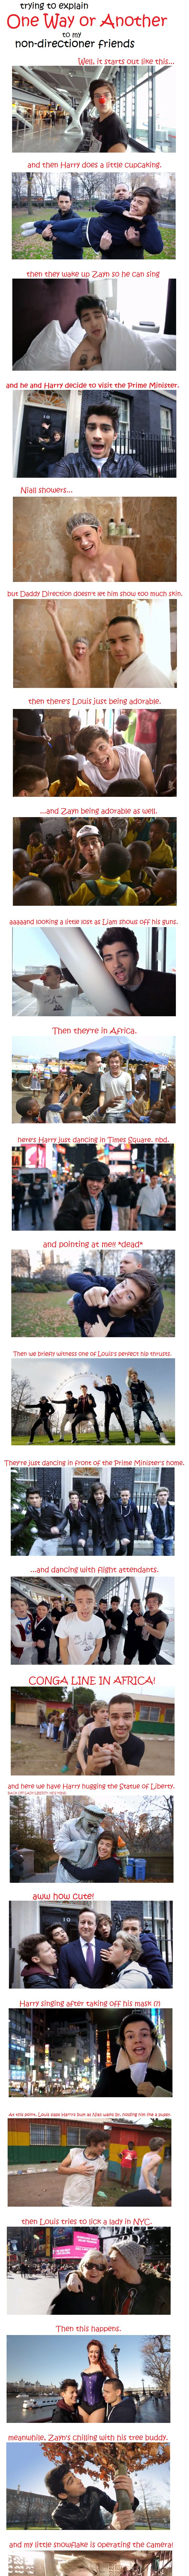 Explaining the One Way or Another video to people who aren't Directioners…